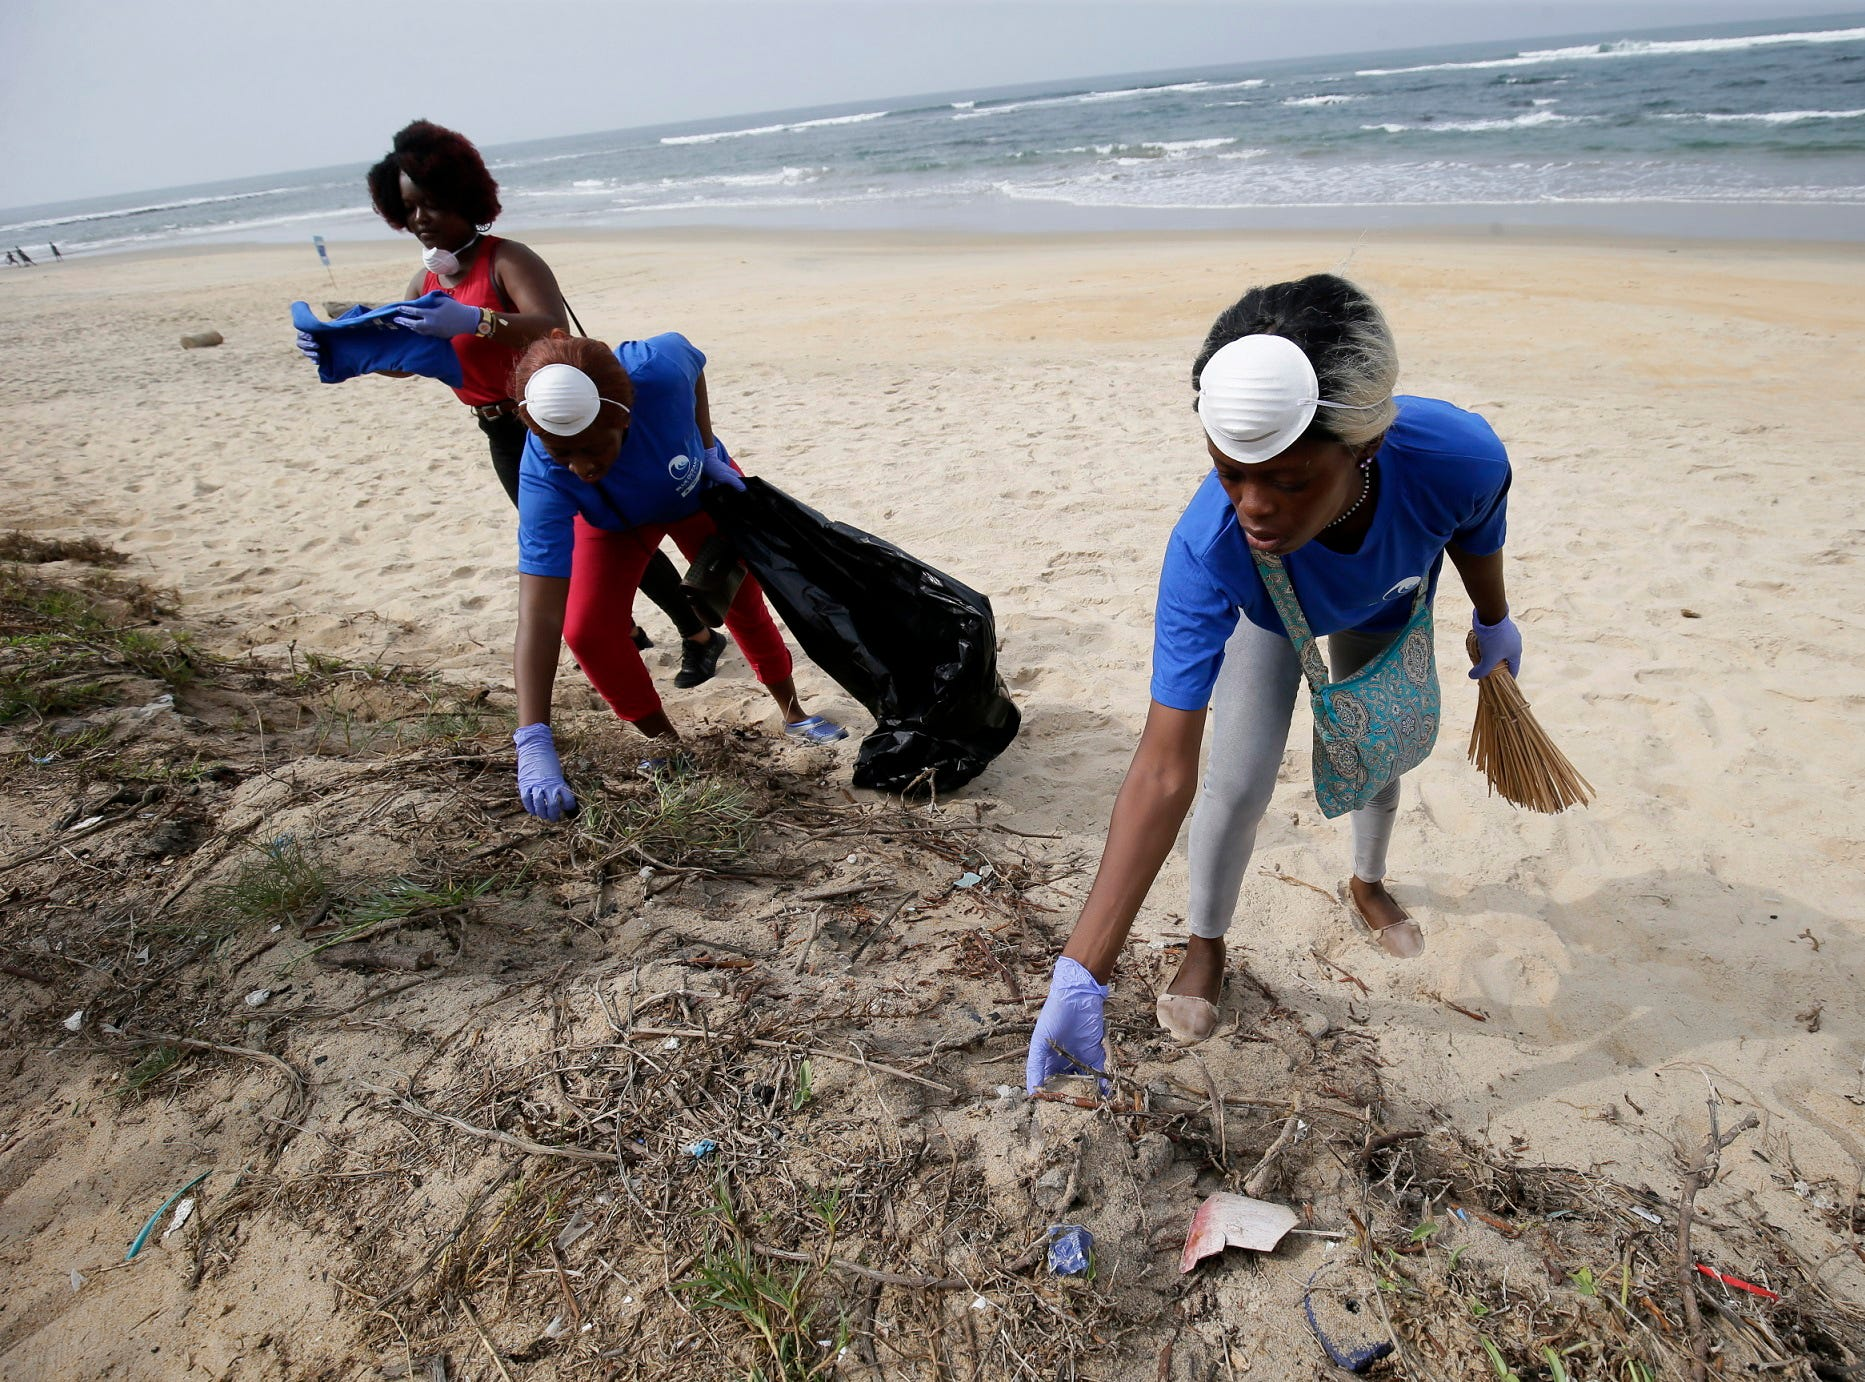 Participants pick up plastic waste on Snow beach in Paynesville City, outside Monrovia, Liberia March 18, 2019.